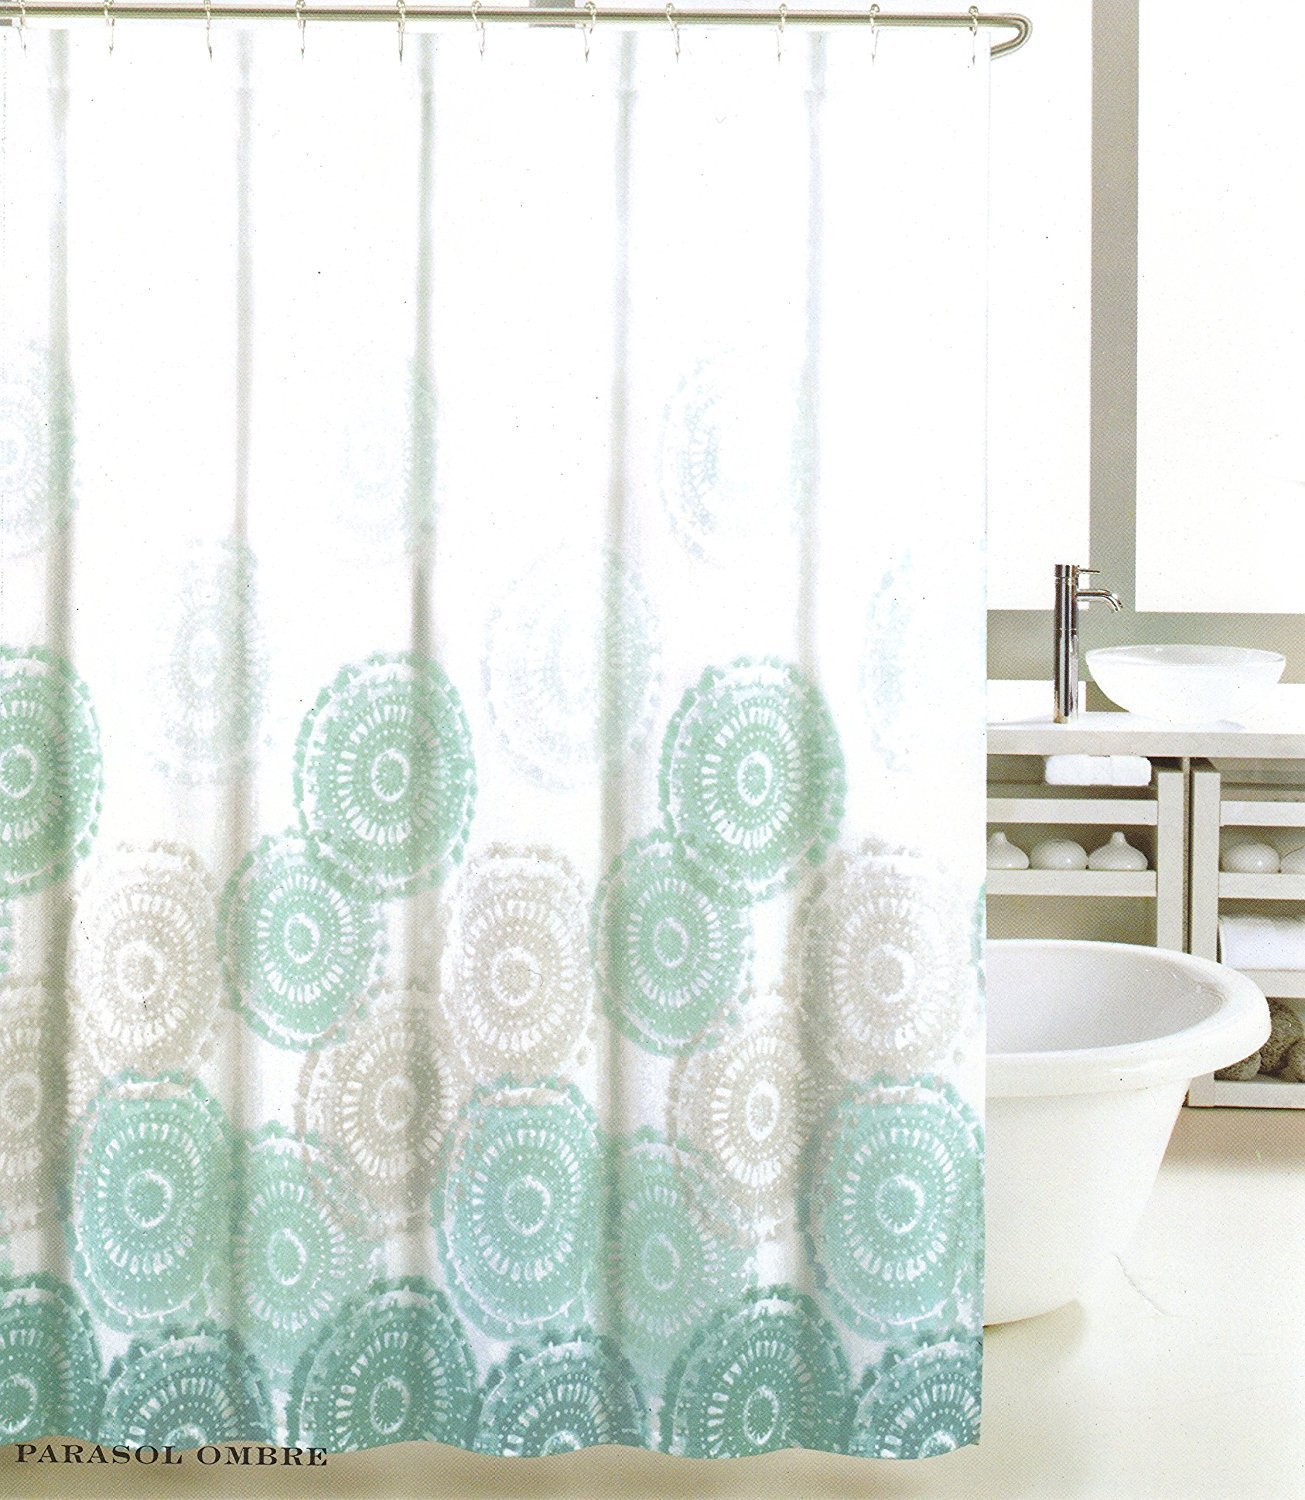 Max Studio Ombre Parasol Gray and Teal on White Shower Curtain